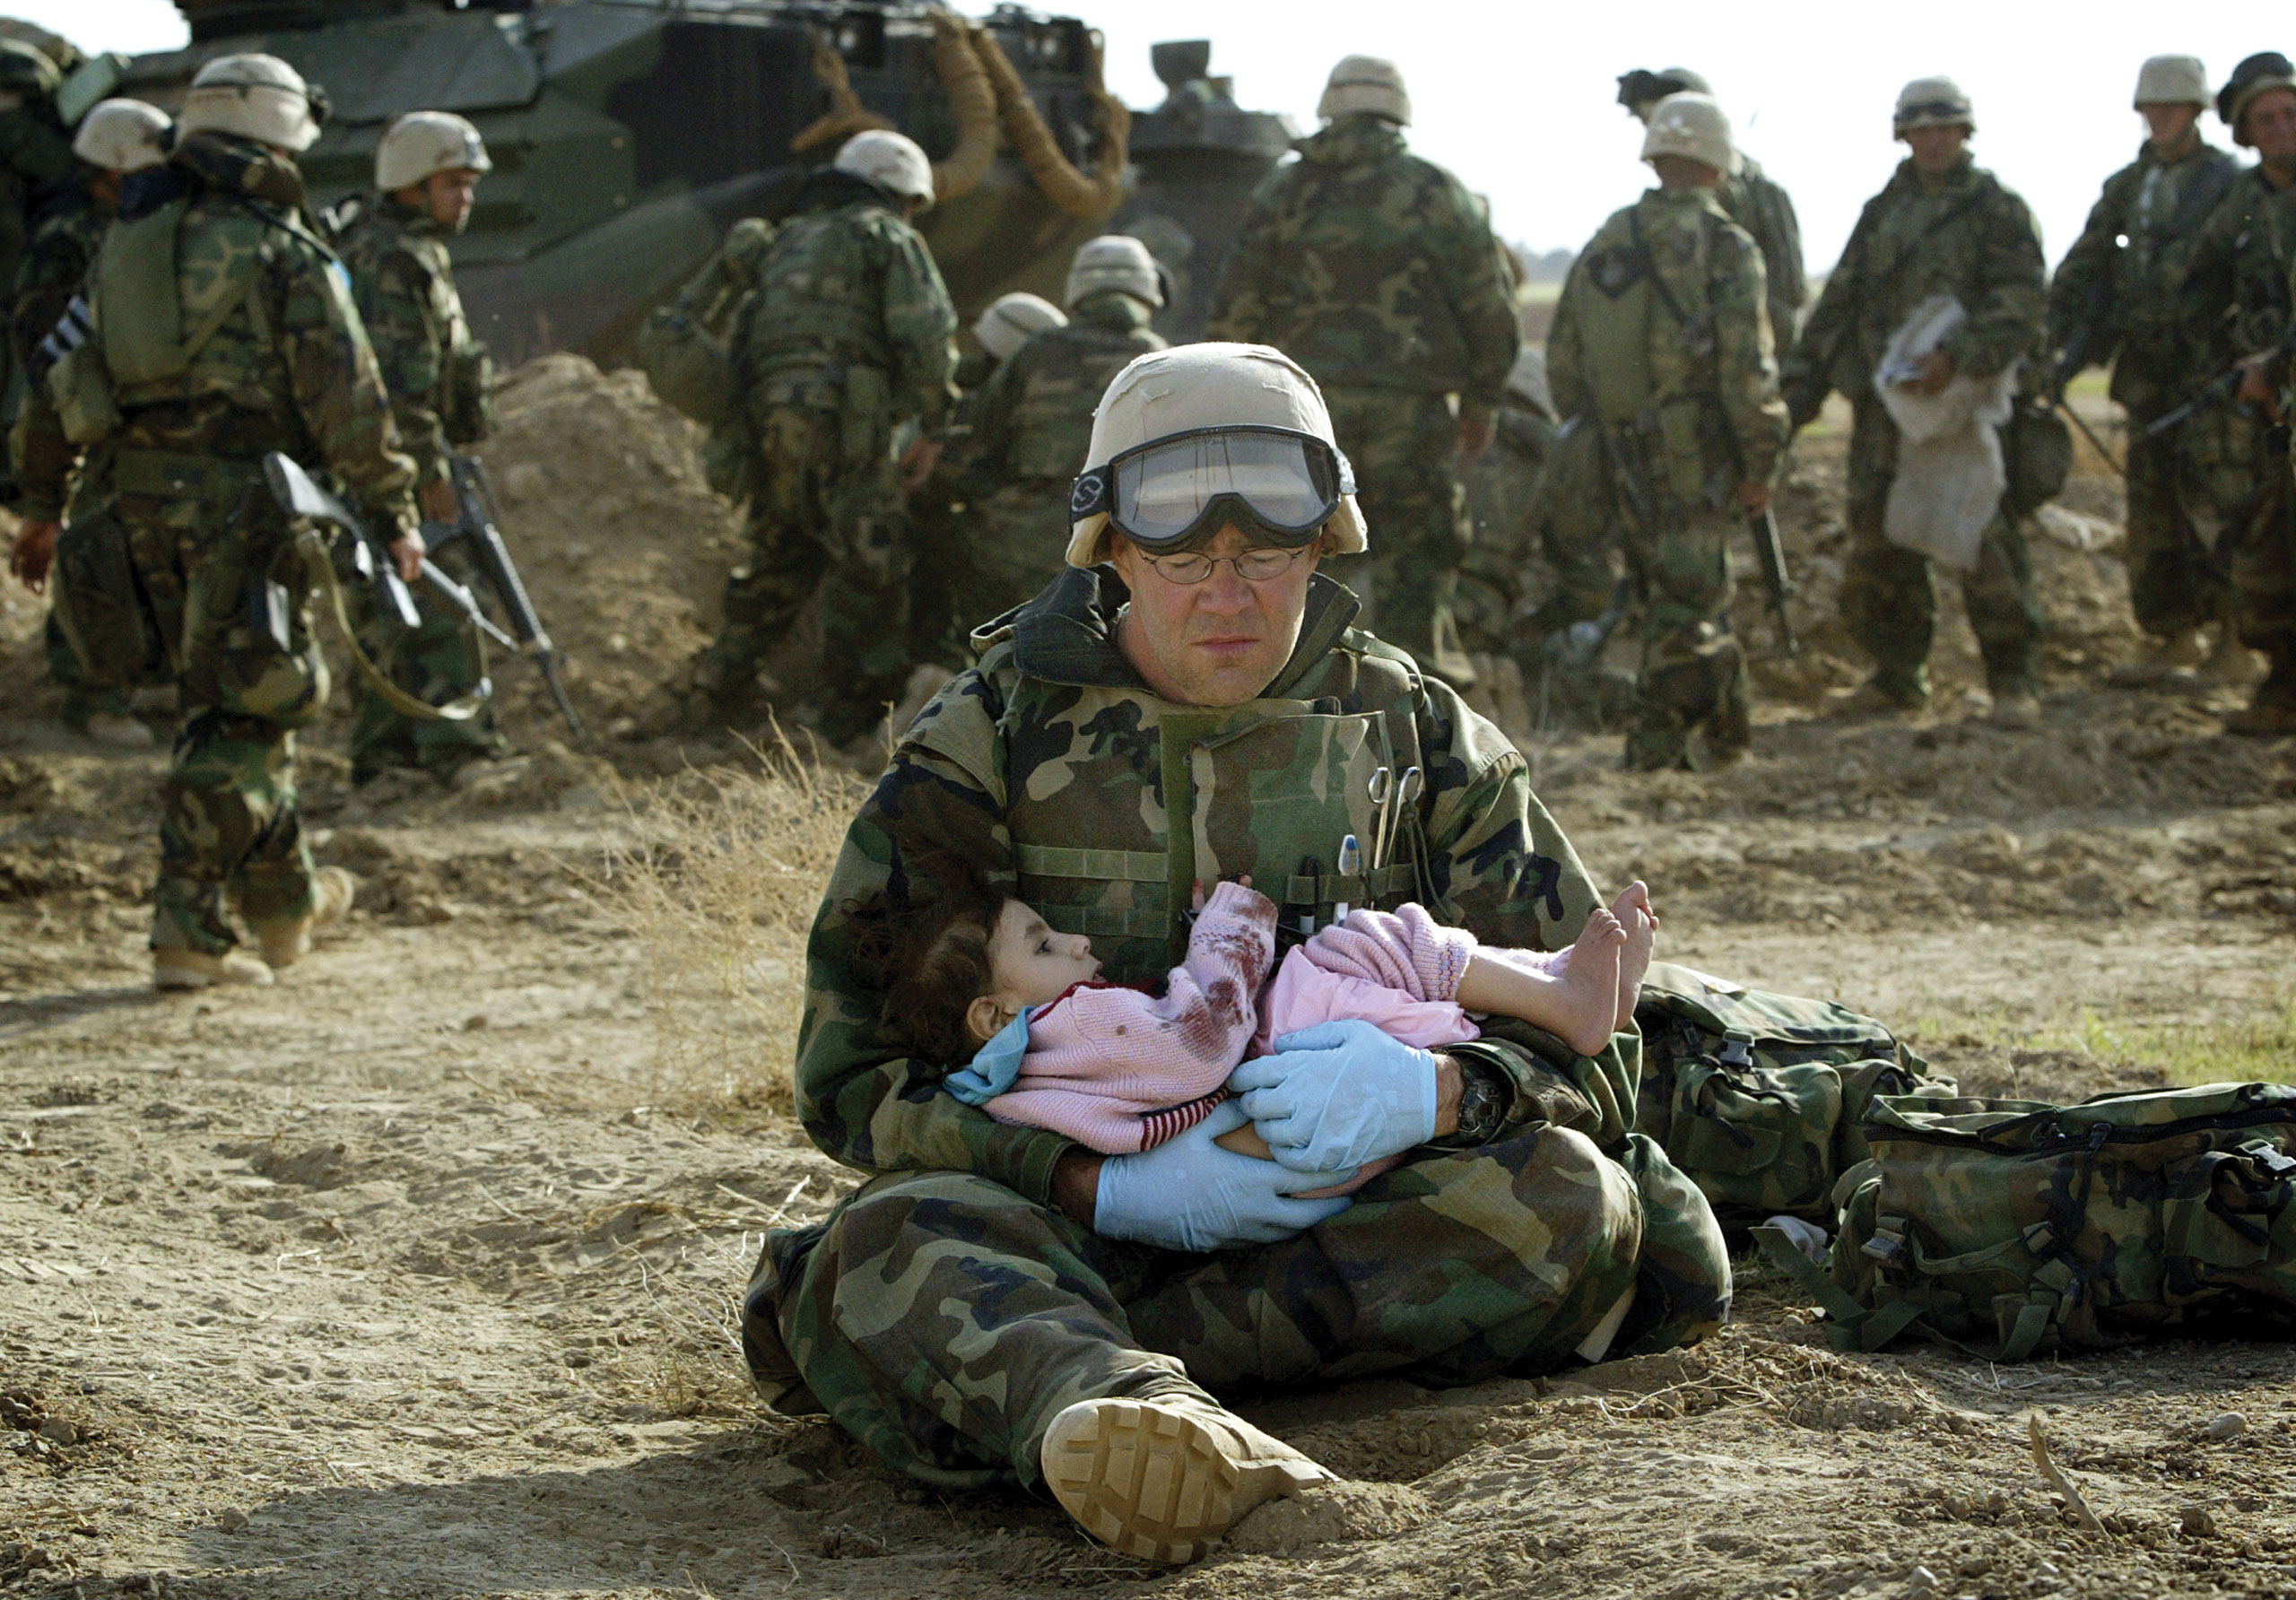 U.S. Navy Hospital Corpsman HM1 Richard Barnett, assigned to the 1st Marine Division, holds an Iraqi child in central Iraq, March 29, 2003.  Confused front line crossfire ripped apart an Iraqi family after local soldiers appeared to force civilians towards positions held by U.S. Marines.